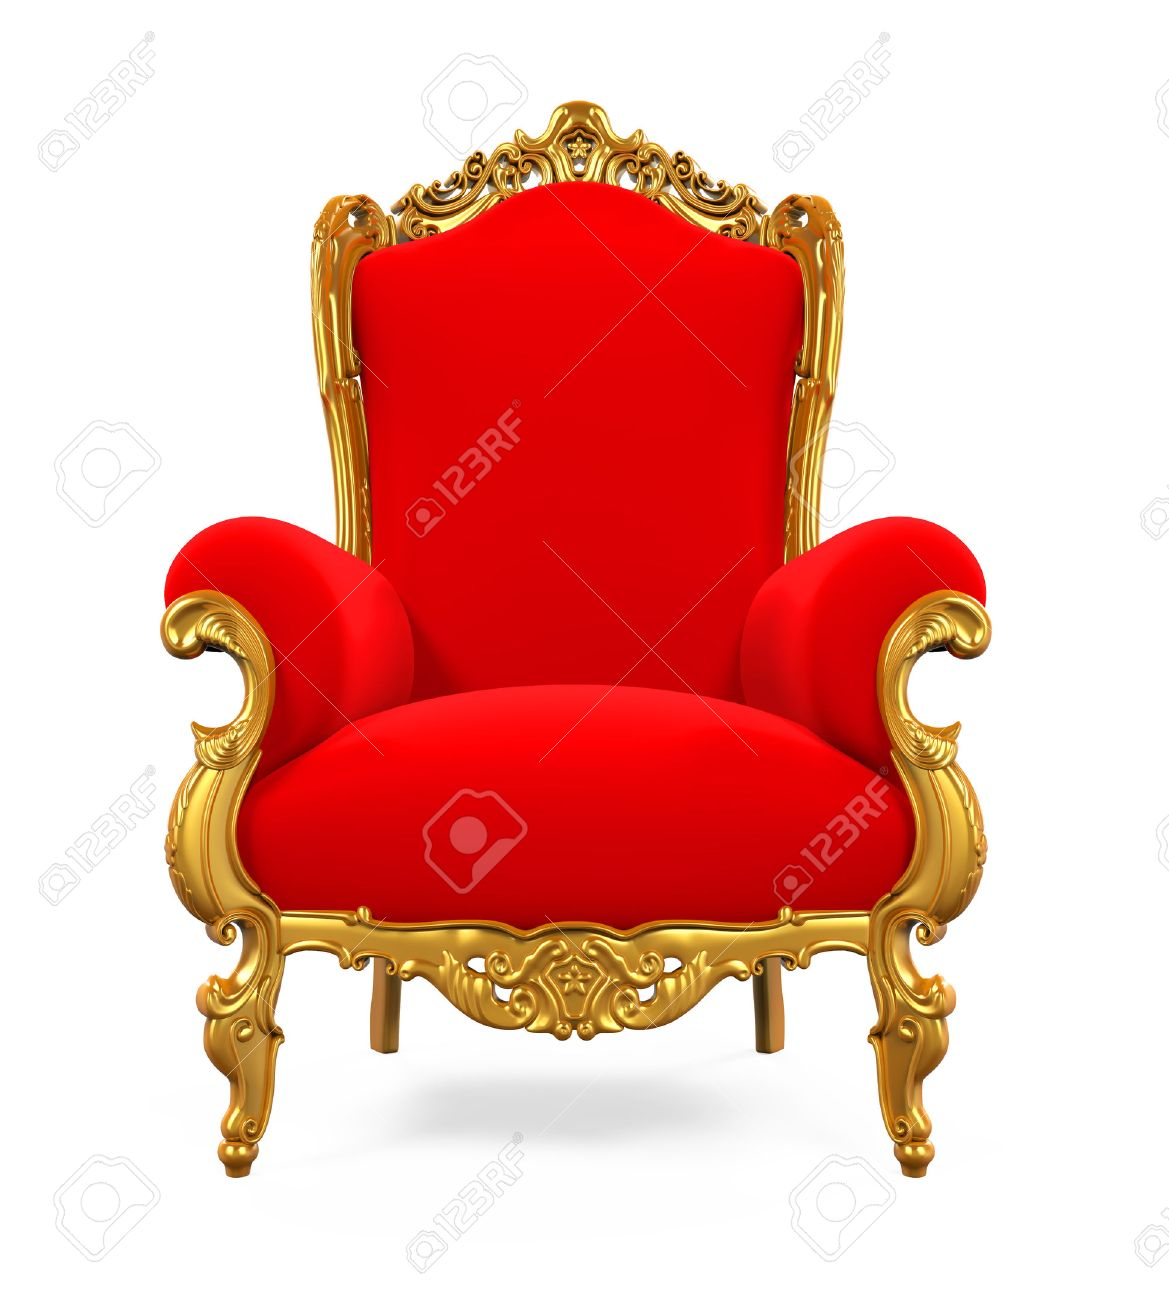 Exceptionnel King Throne Chair Stock Photo   62345924